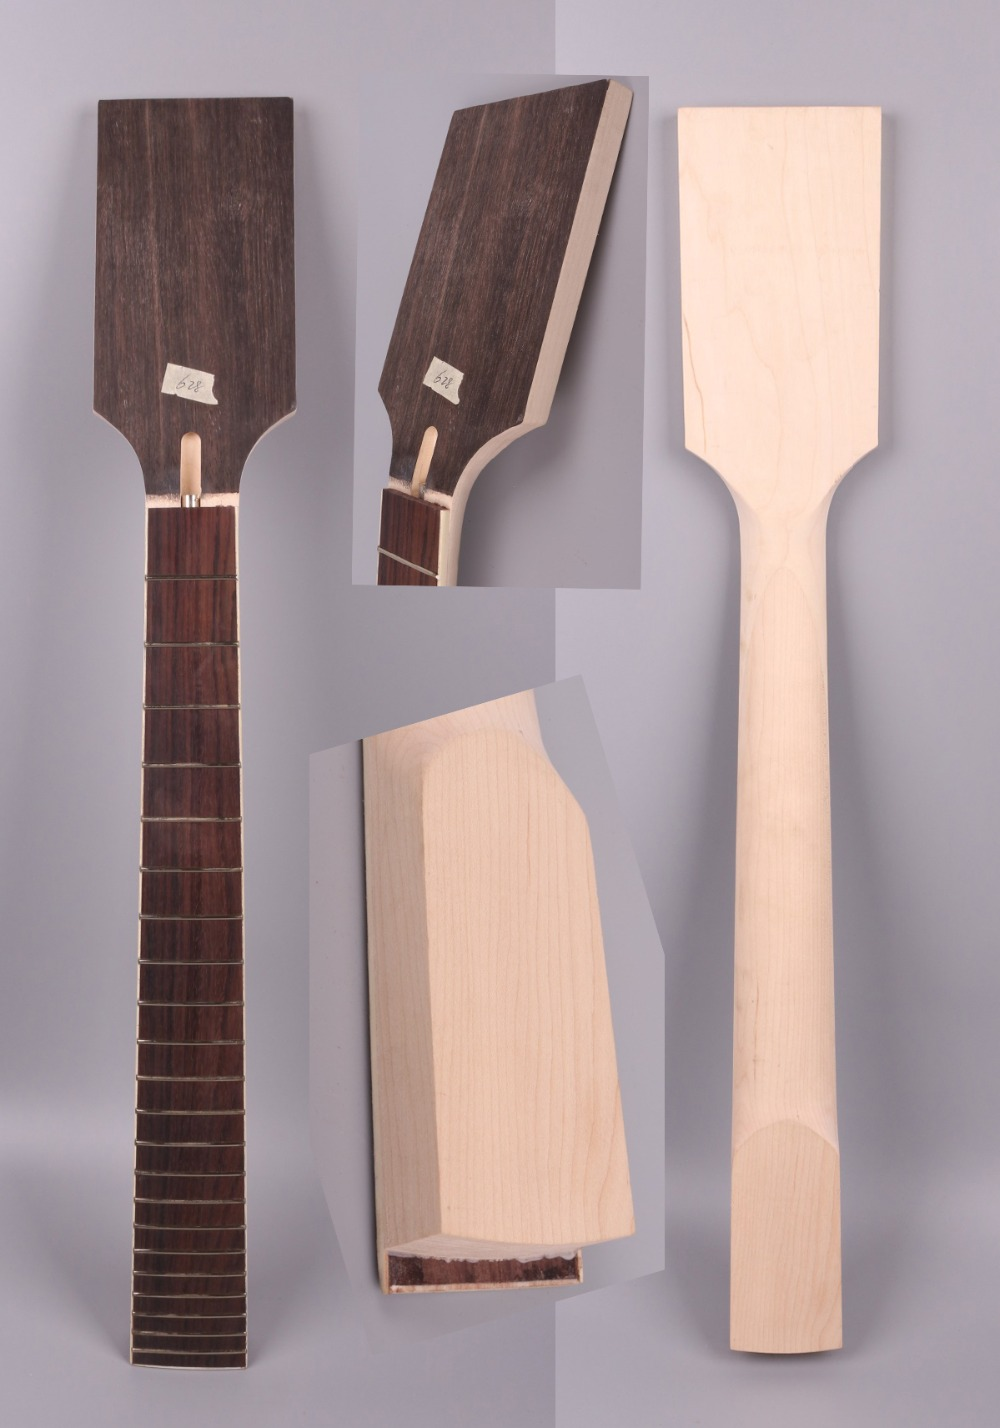 Yinfente 7 string electric guitar neck replacement 22 fret Paddle head maple rosewood fretboard guitar maker 25.5 inch yinfente electric guitar neck 22 fret reversed head rosewood fretboard 25 5 inch maple locking nut shark inlay 13